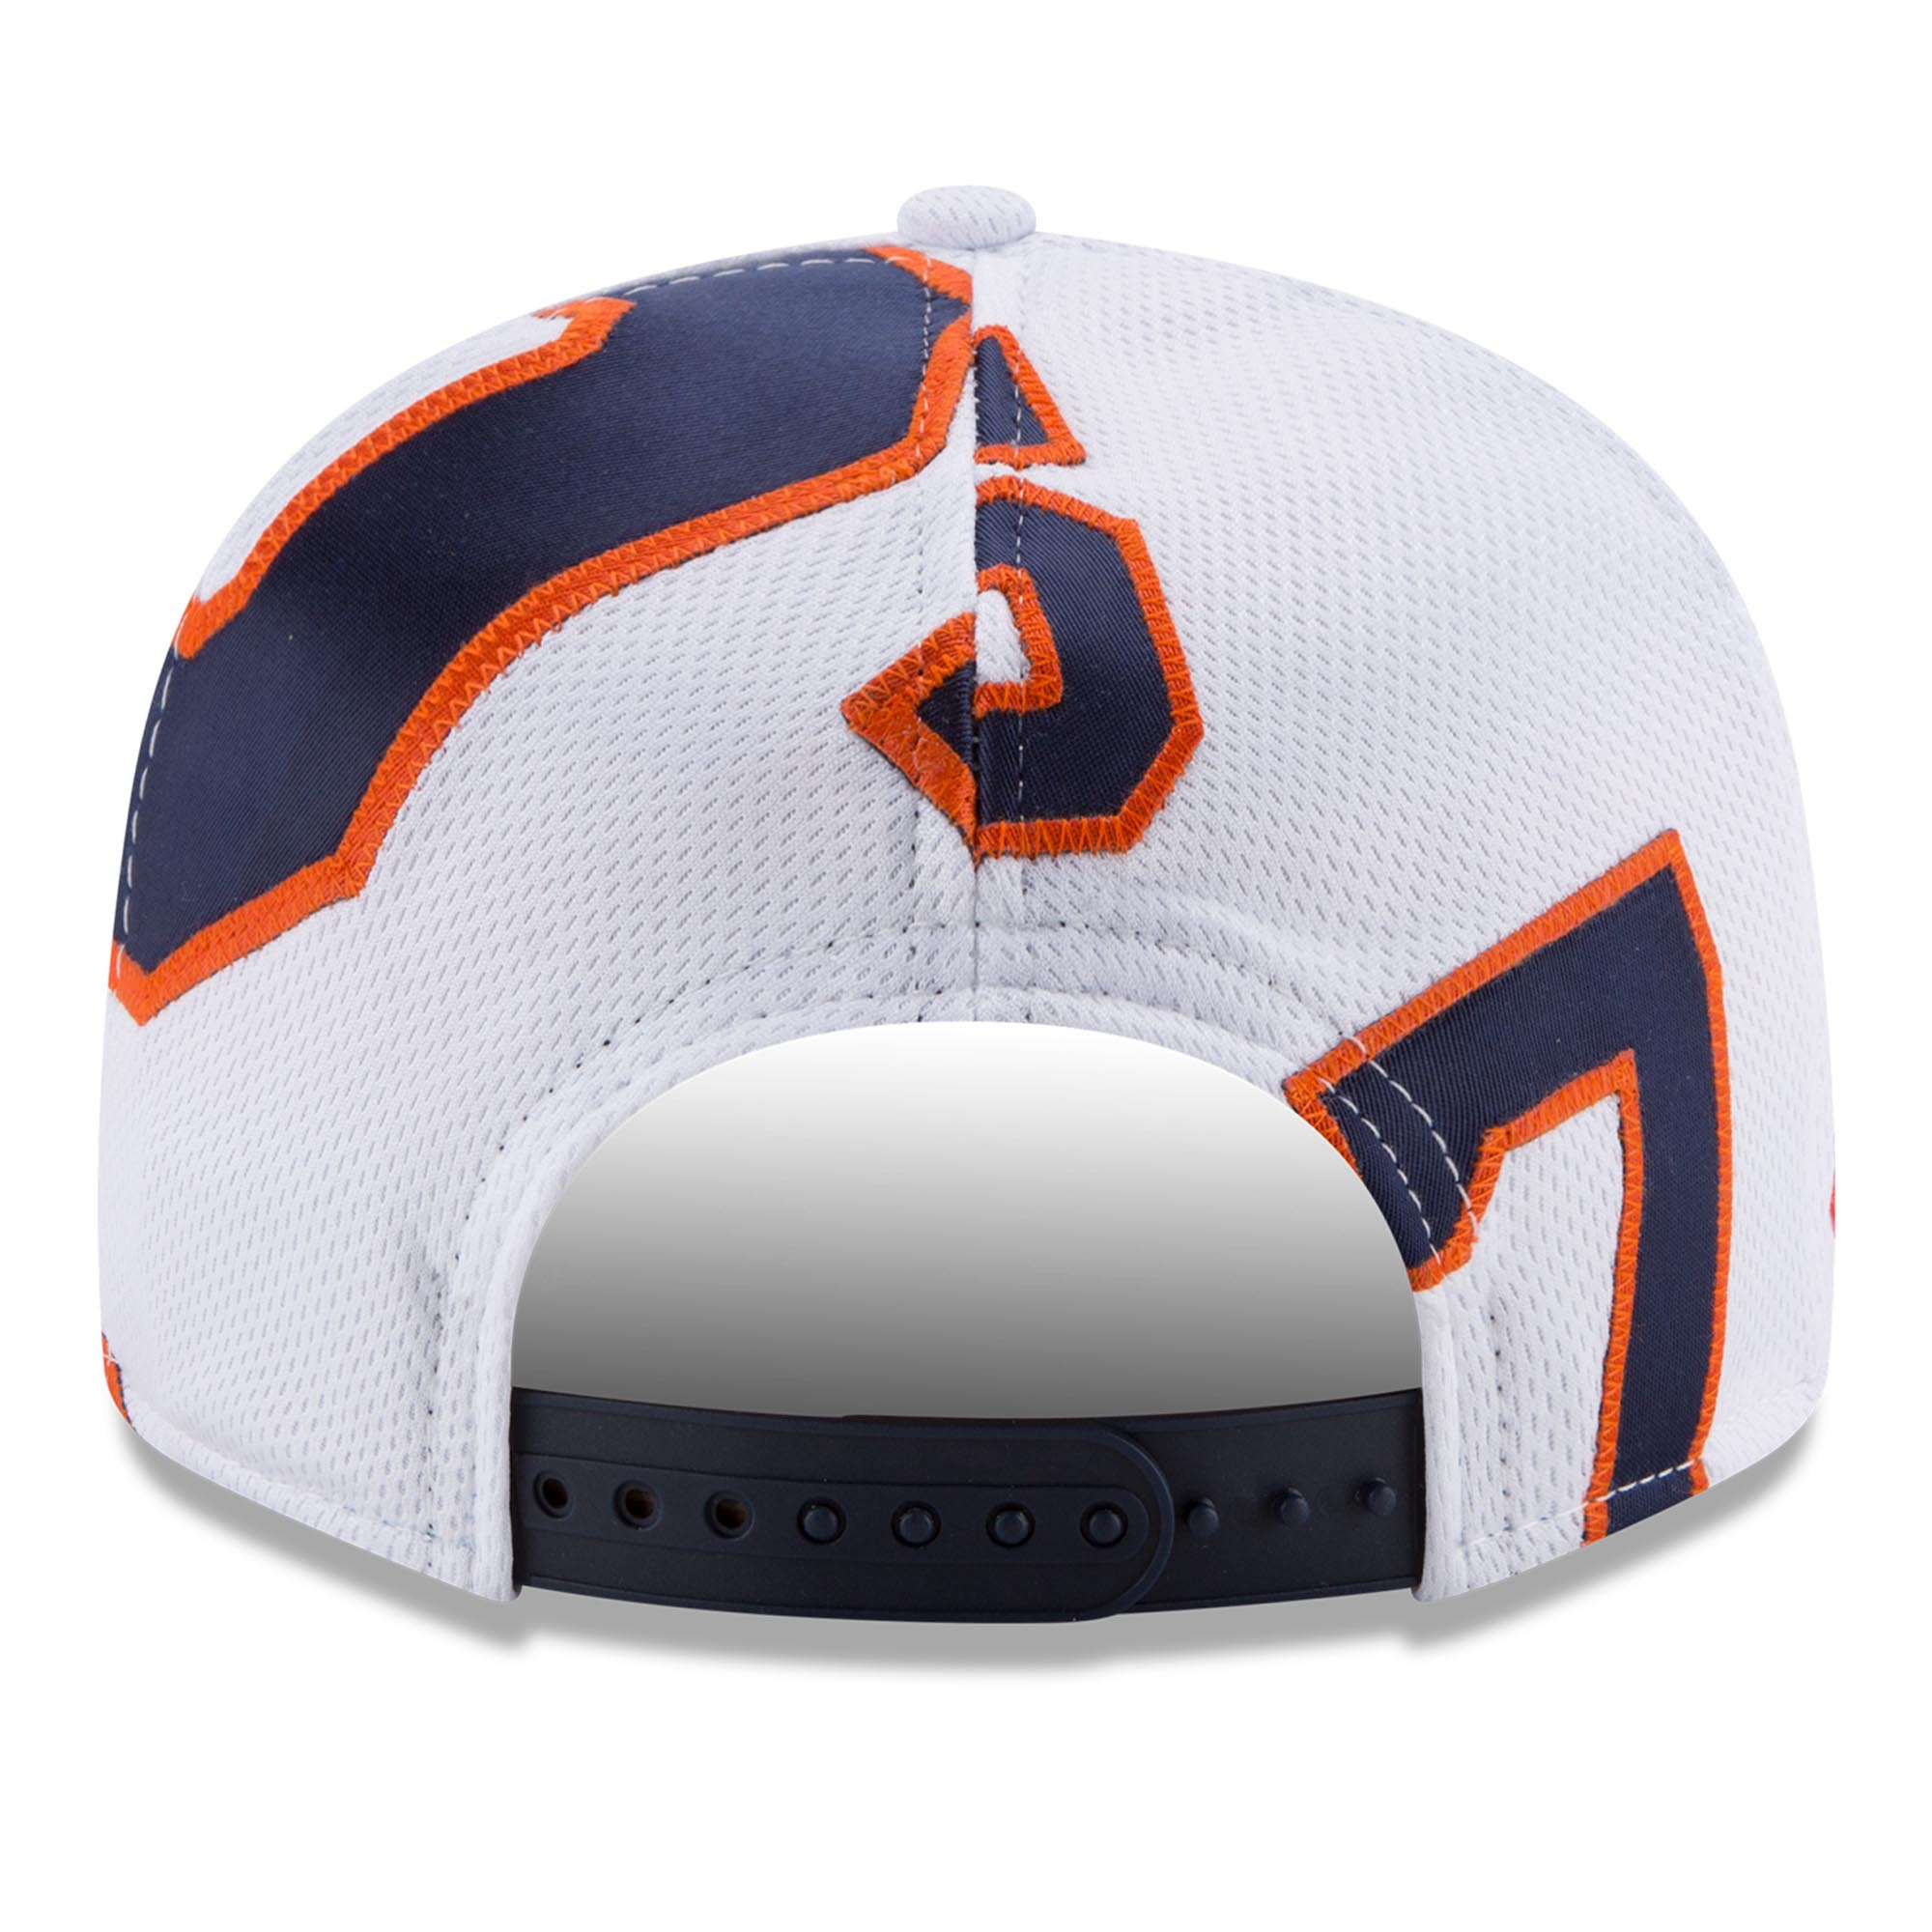 cheap for discount 5dfcc 82942 Jose Altuve Houston Astros New Era Player Authentic Jersey V3 9FIFTY  Snapback Adjustable Hat - White - OSFA - Walmart.com